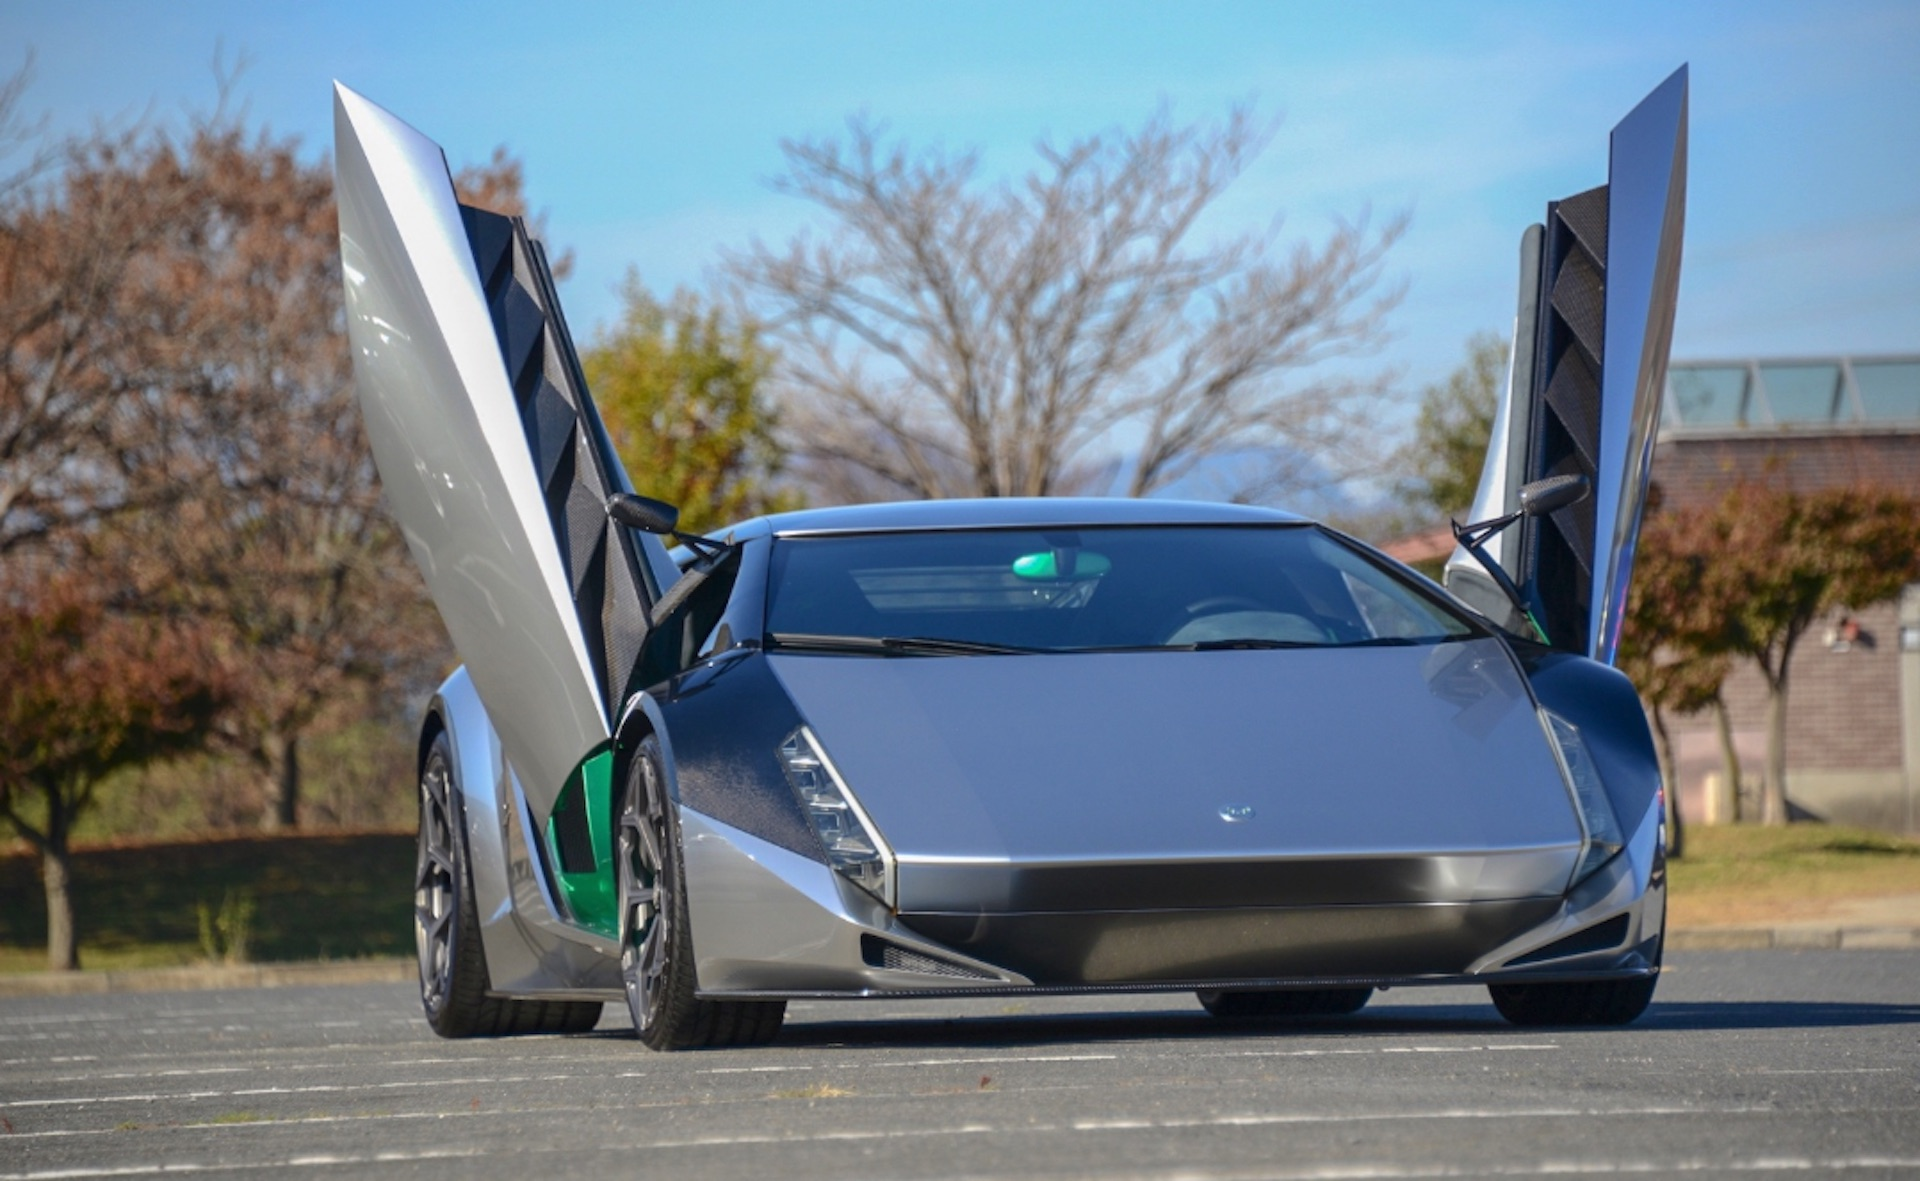 Buyer S Remorse Kode 0 Coach Built Supercar For Sale Only A Year